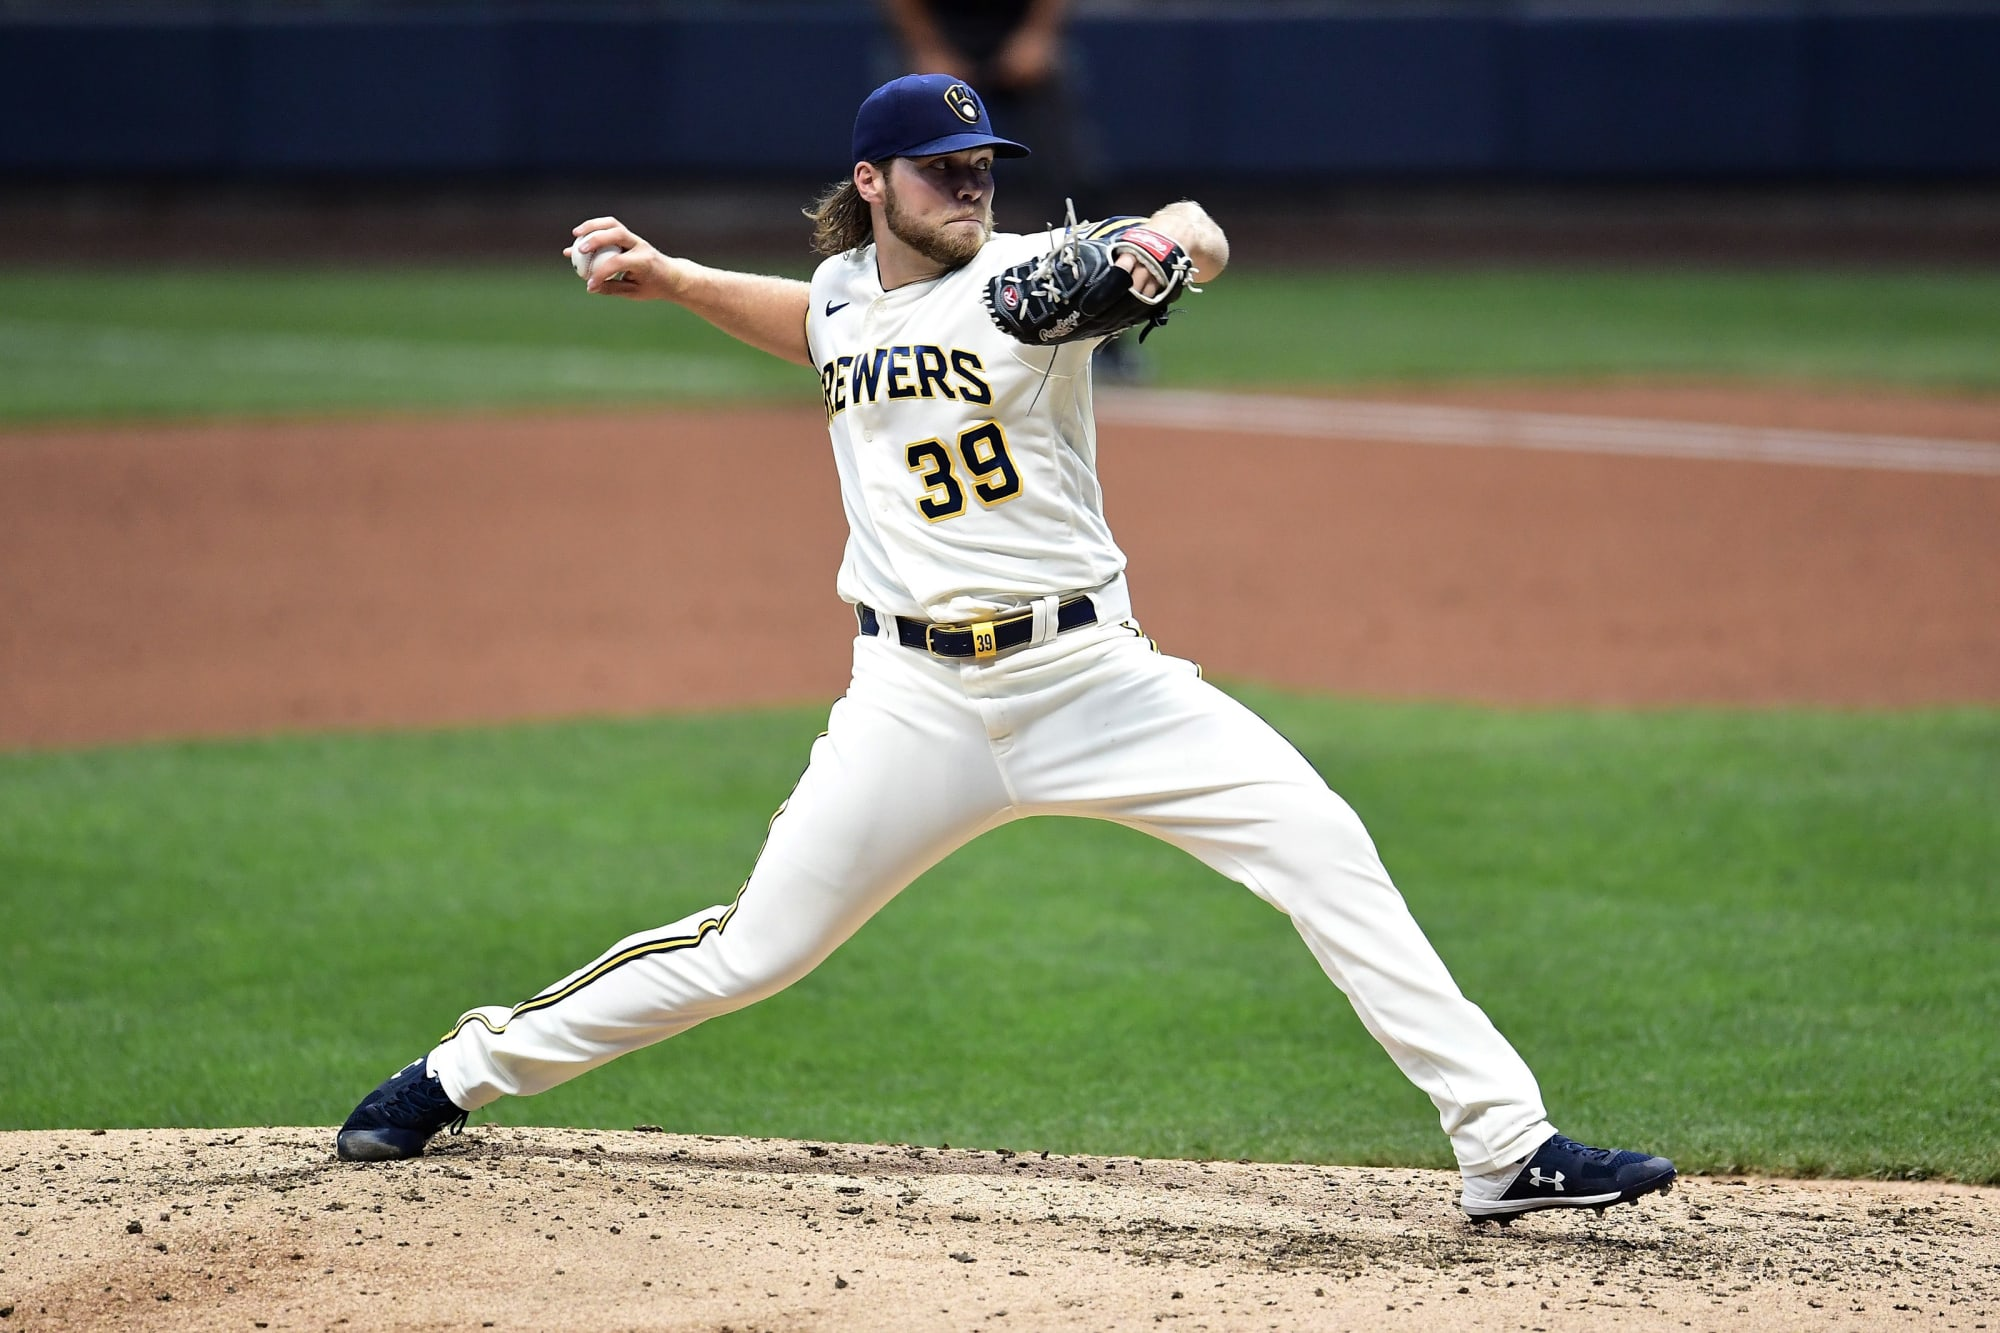 Corbin Burnes sets MLB record for most strikeouts without a walk to start season